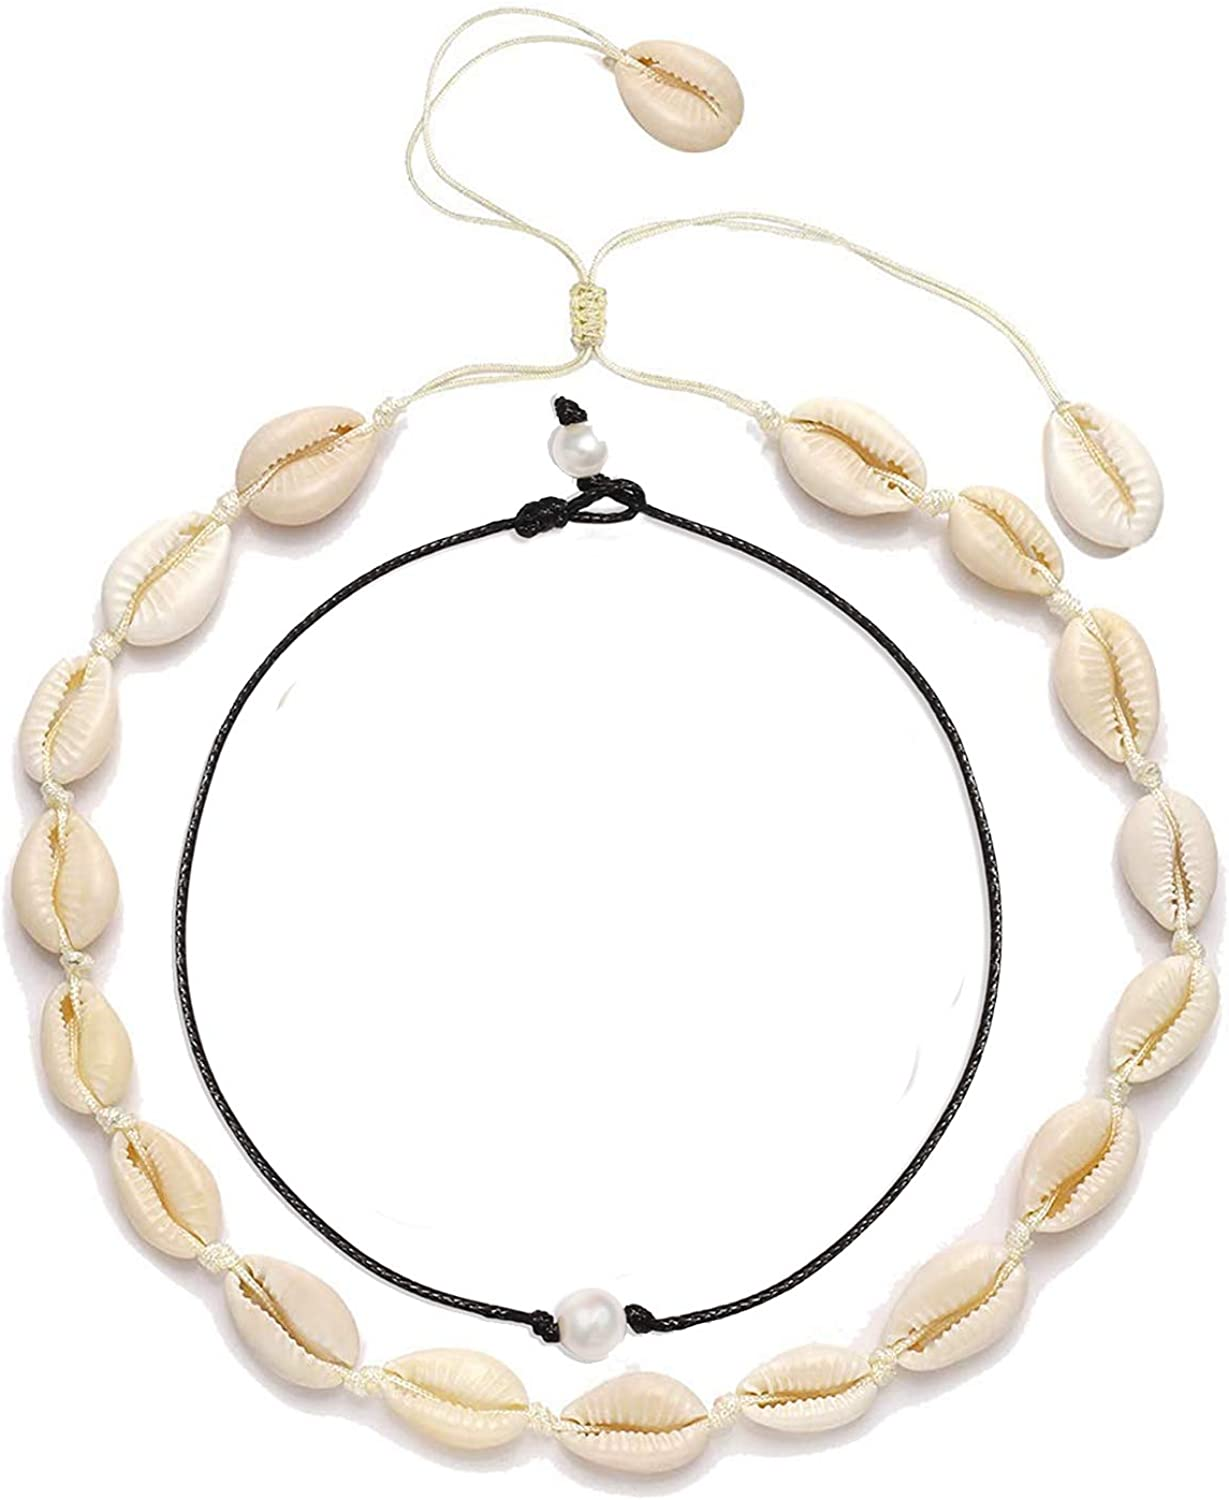 Natural Gold Adjustable Beach Sea Necklaces Beach Shell Necklace Choker Shells